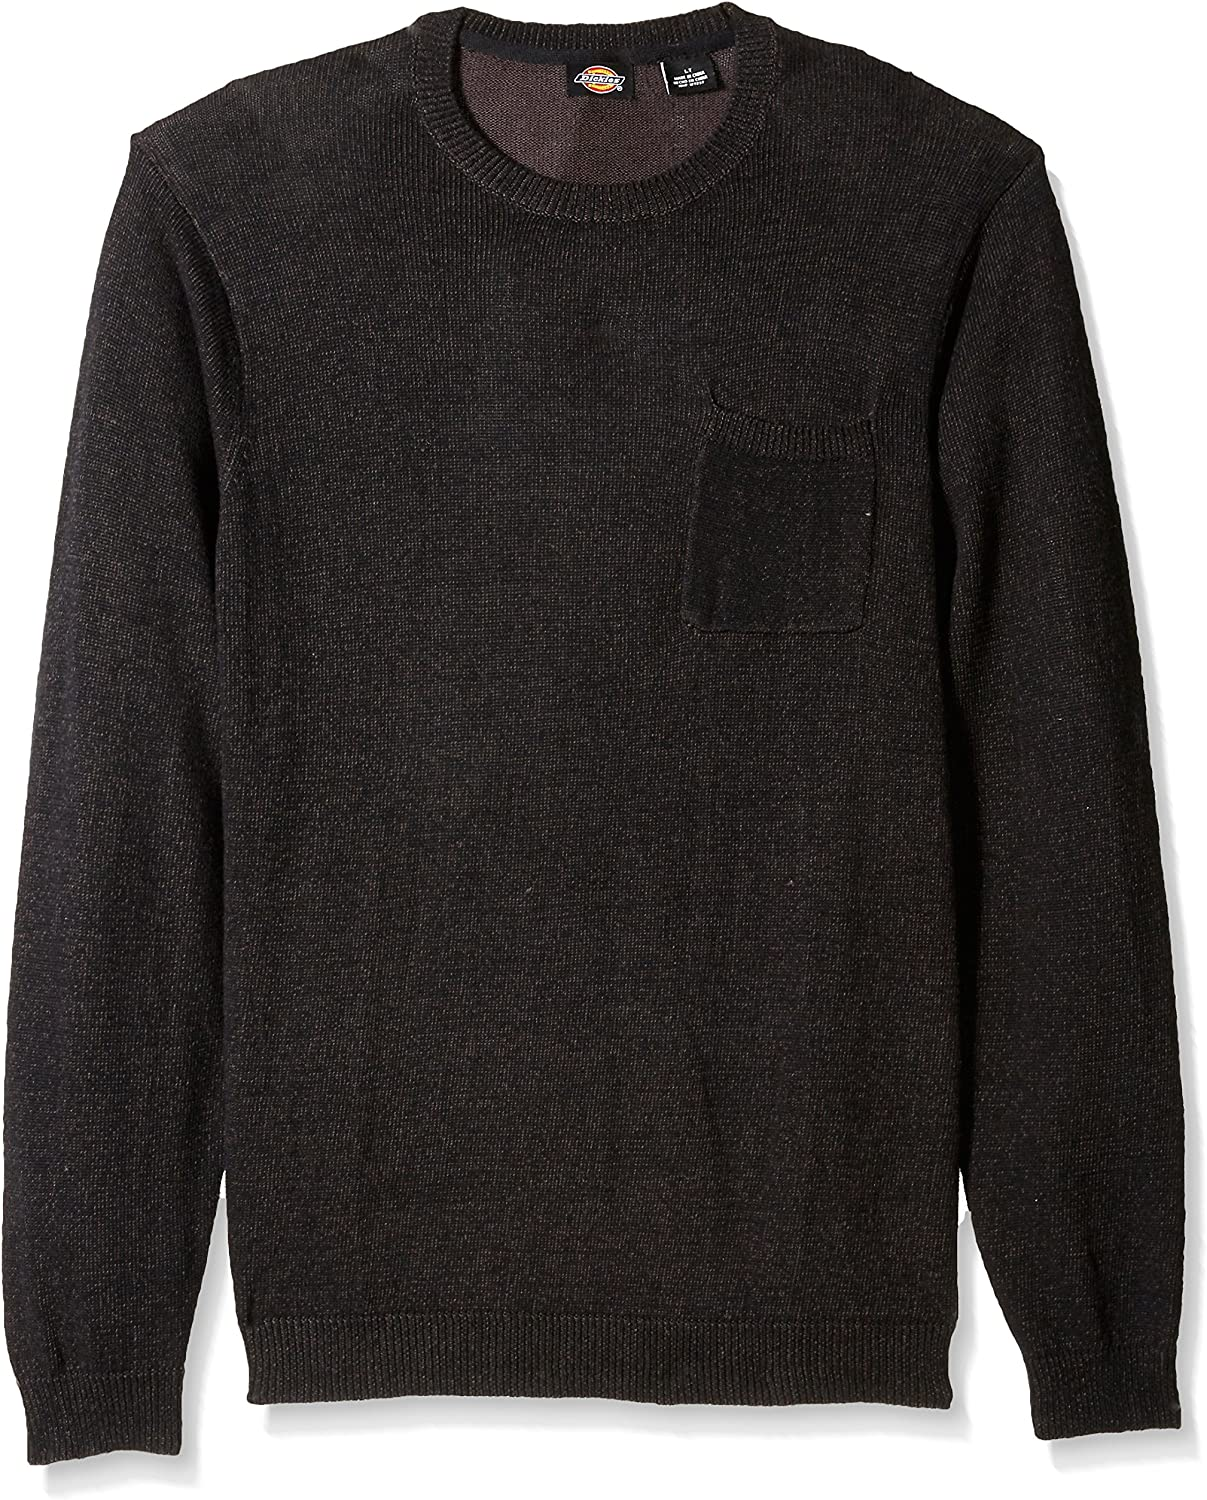 Dickies Men's Big and Tall Crew Pullover with Patch Pocket